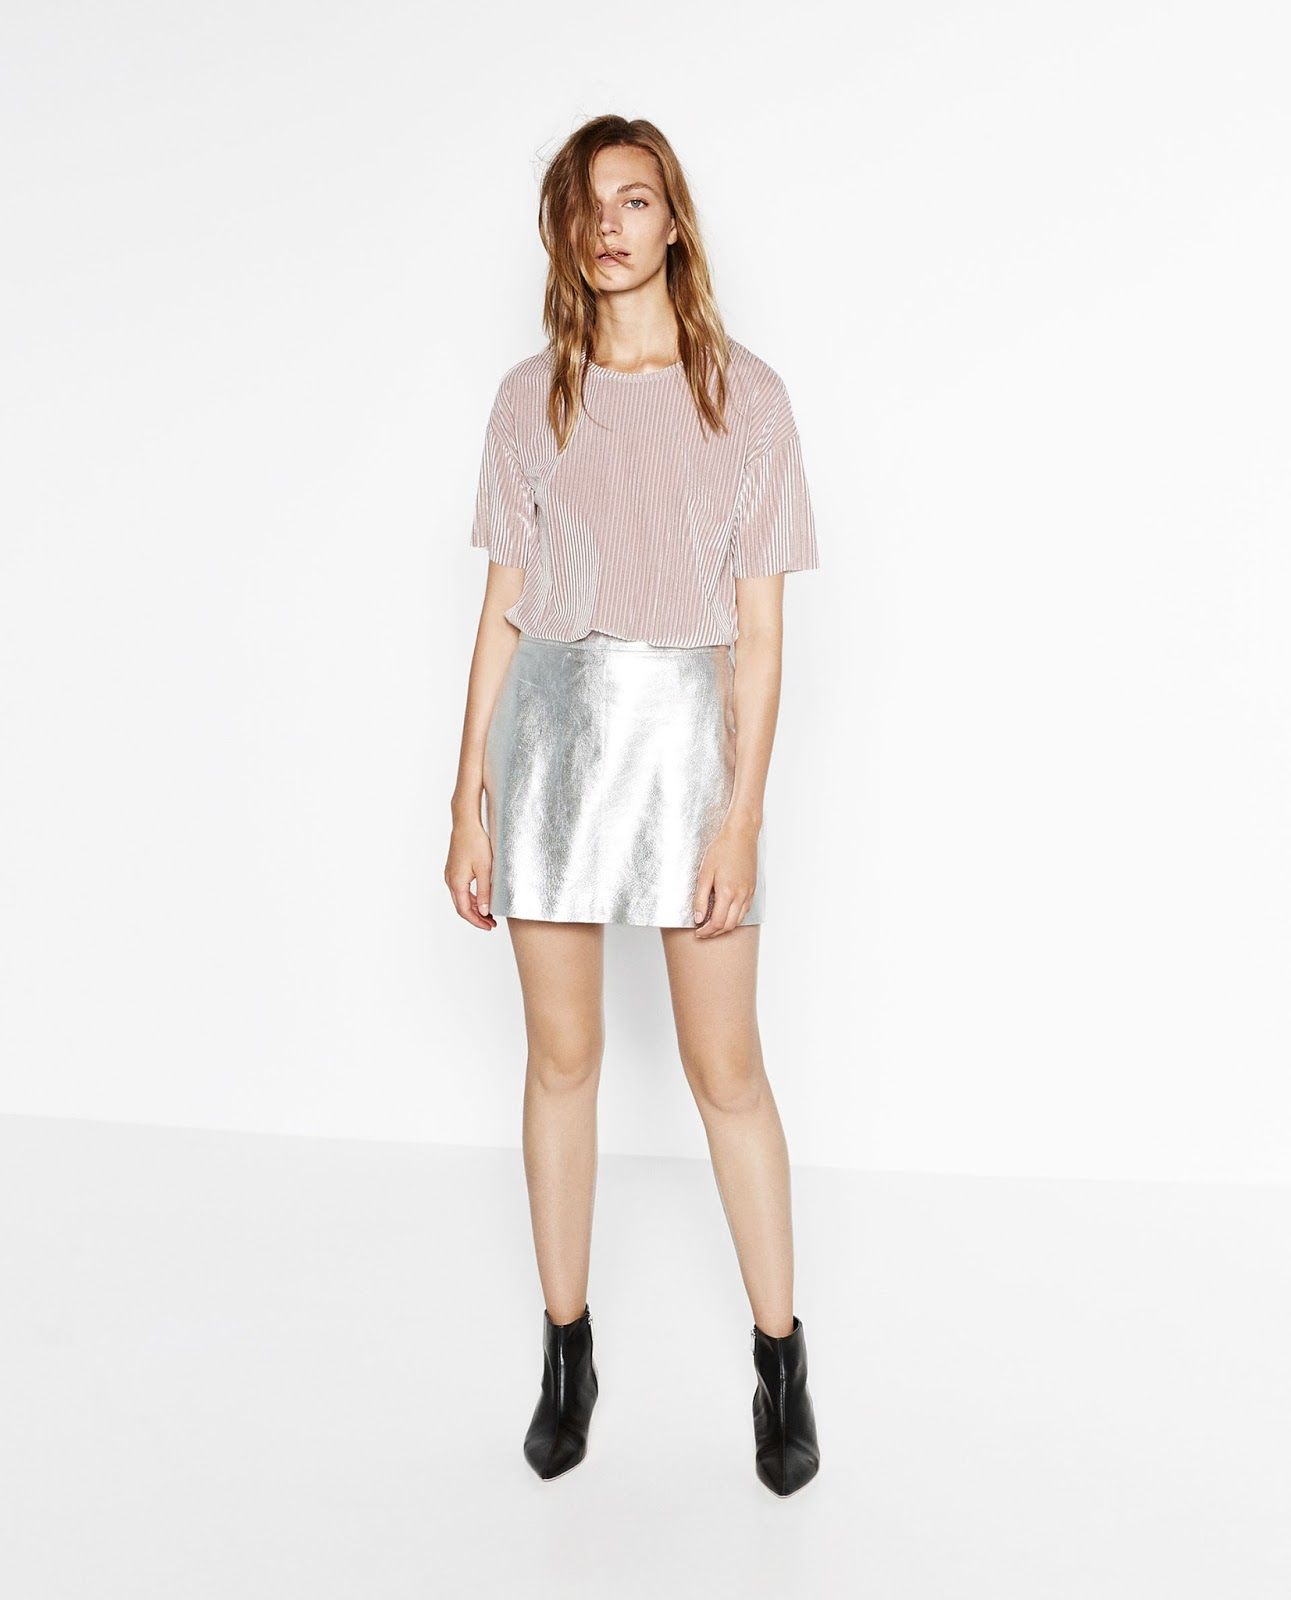 Zara blush velvet cropped top